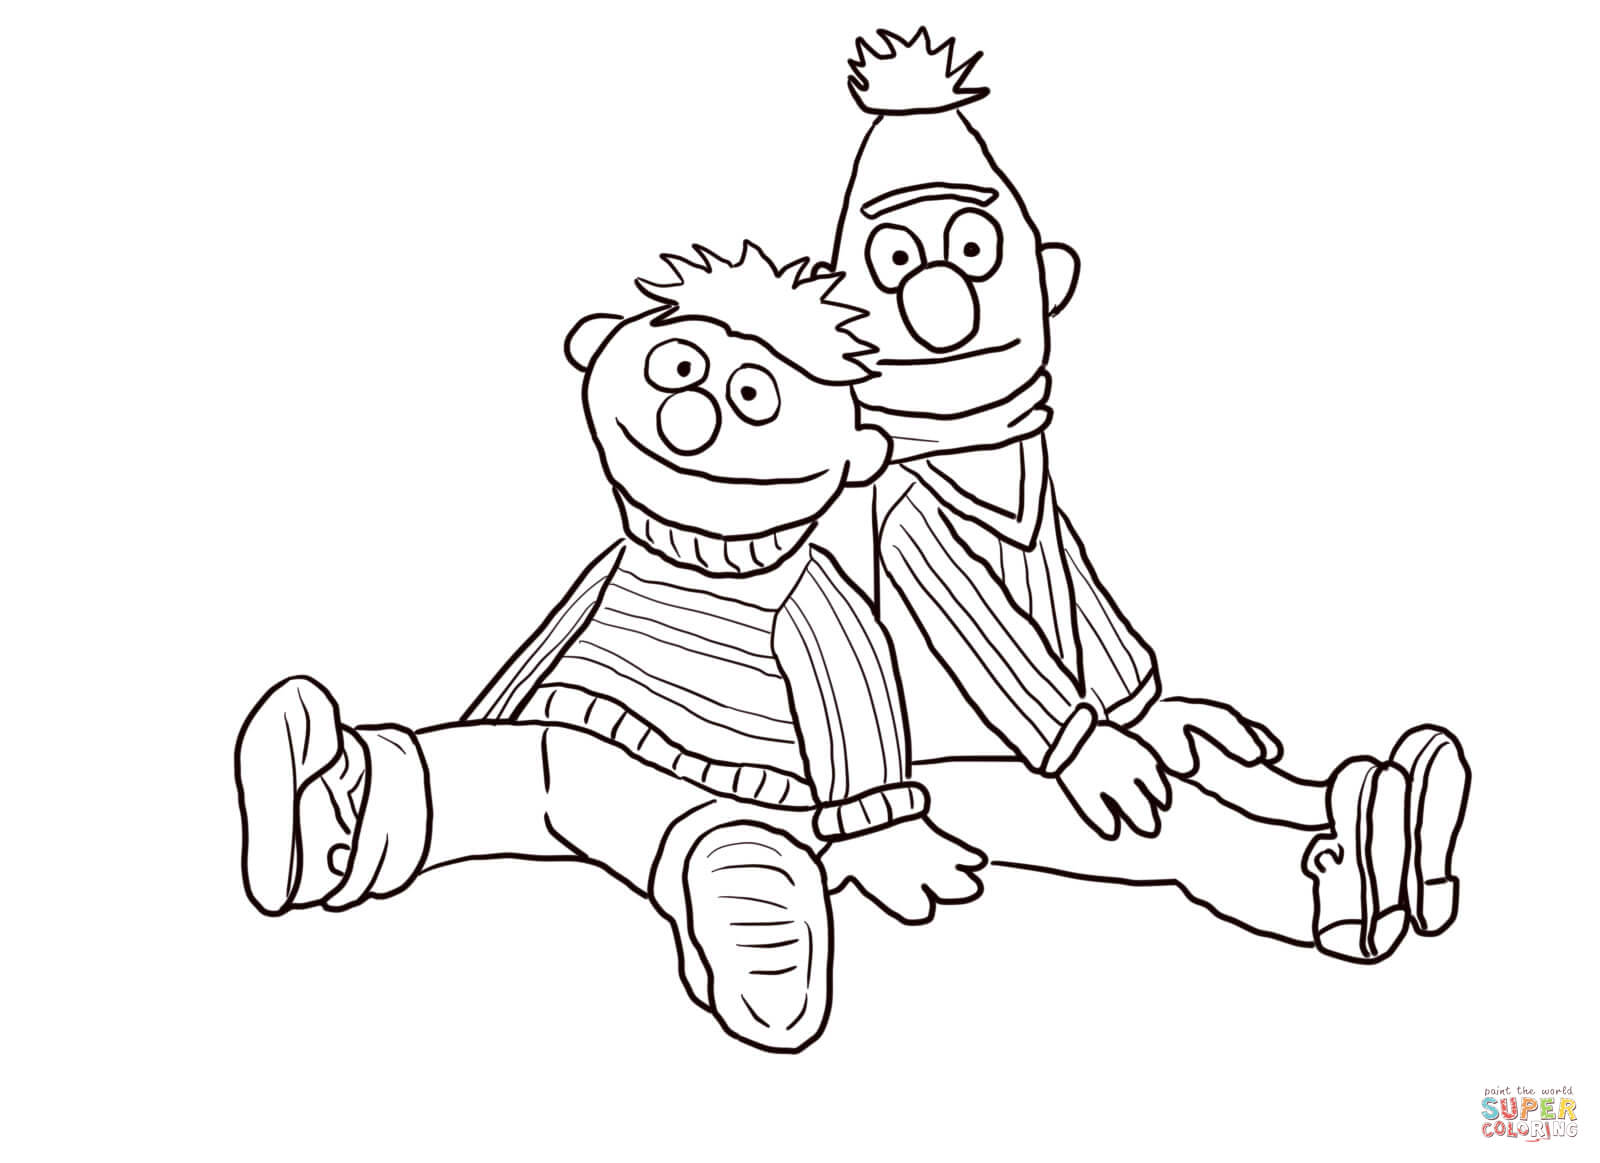 Bert And Ernie Sitting And Leaning Coloring Page